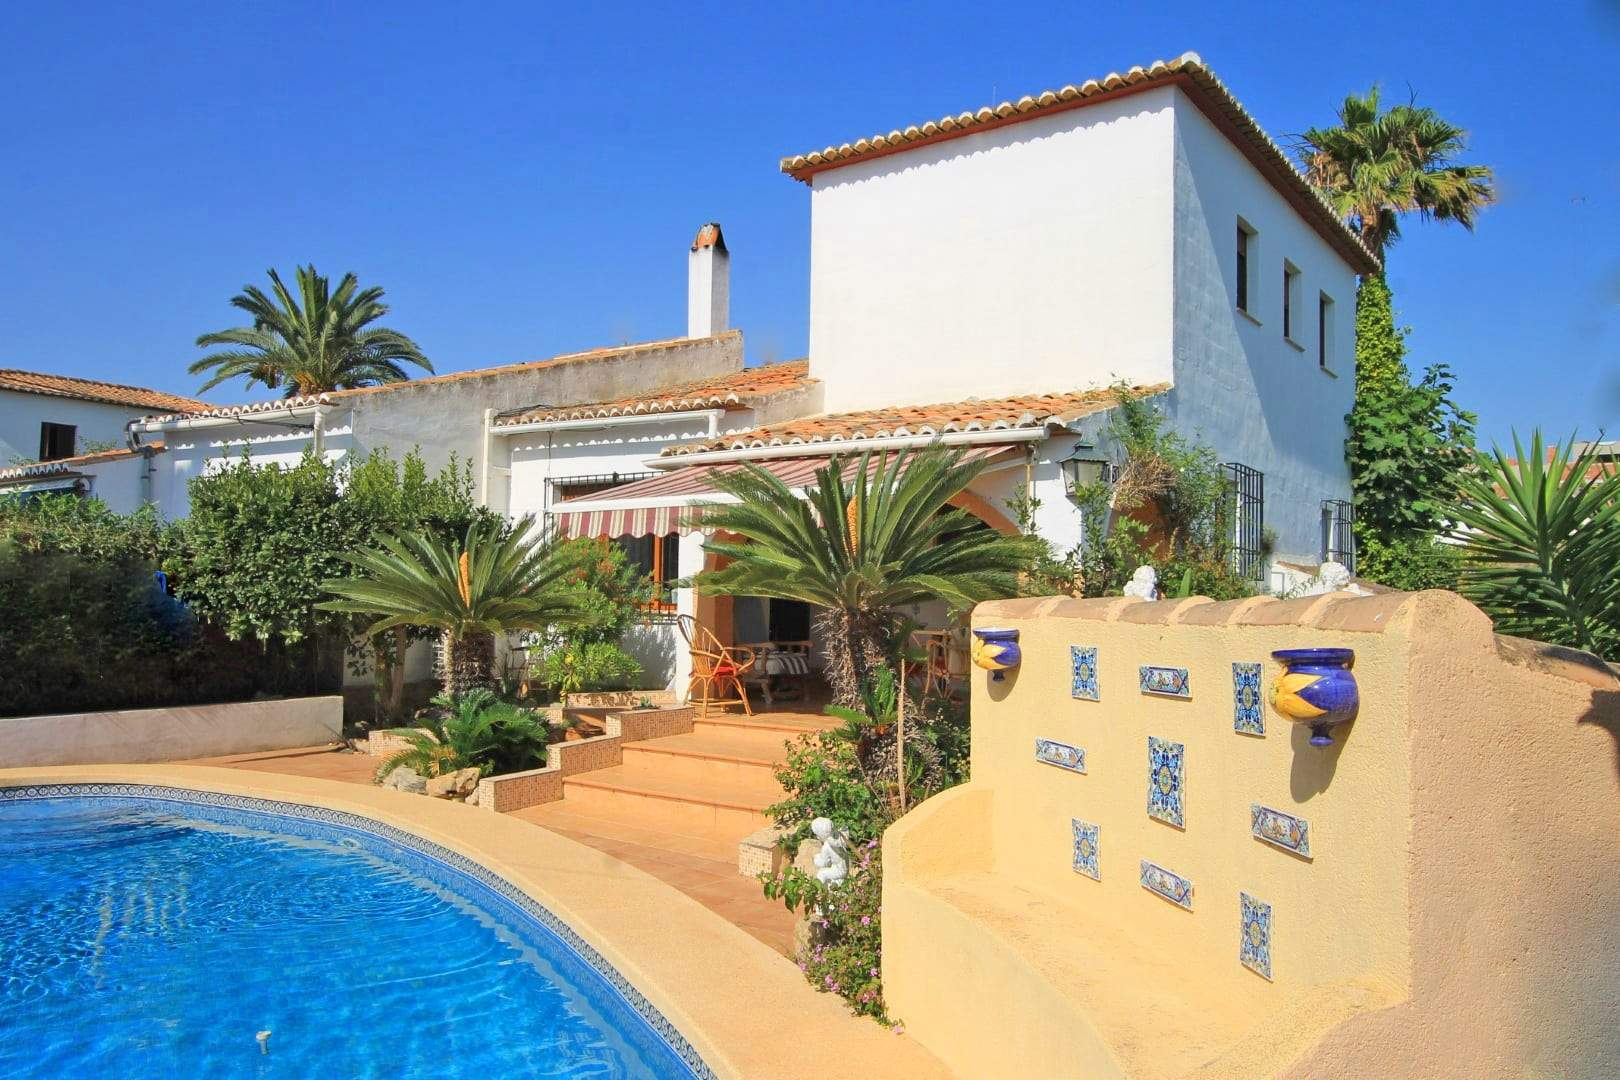 5 Bedroom Town house in Javea